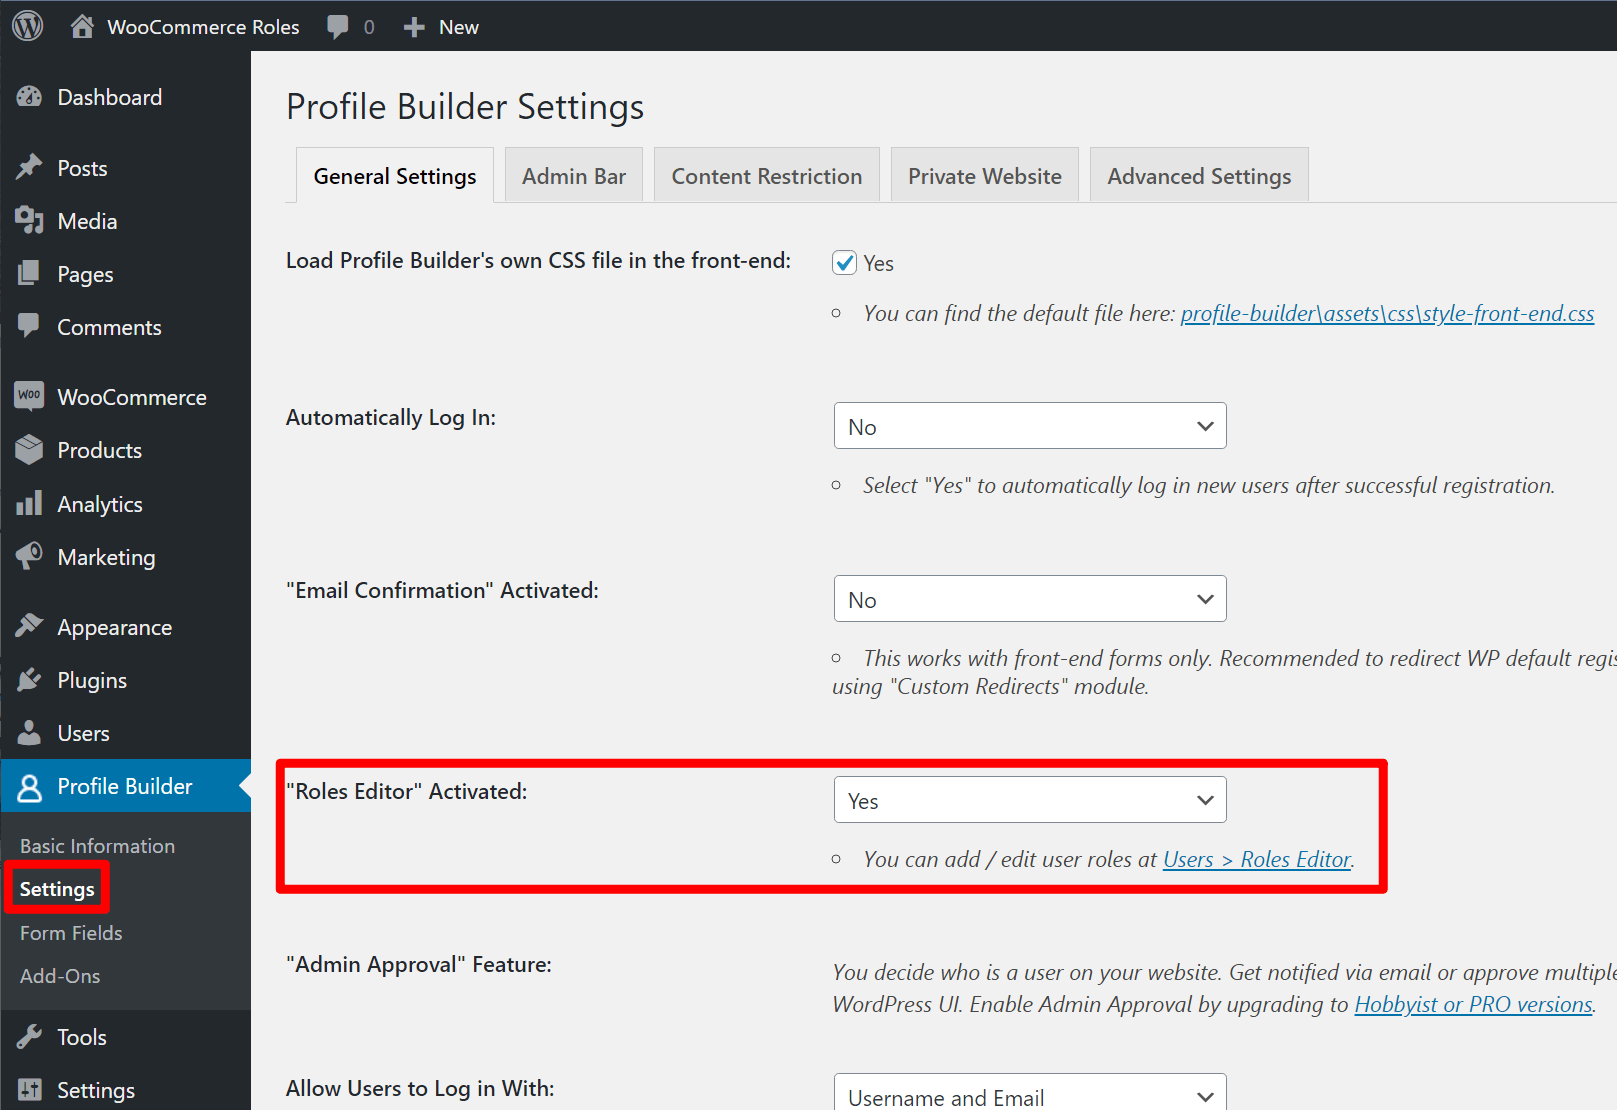 How to enable roles editor